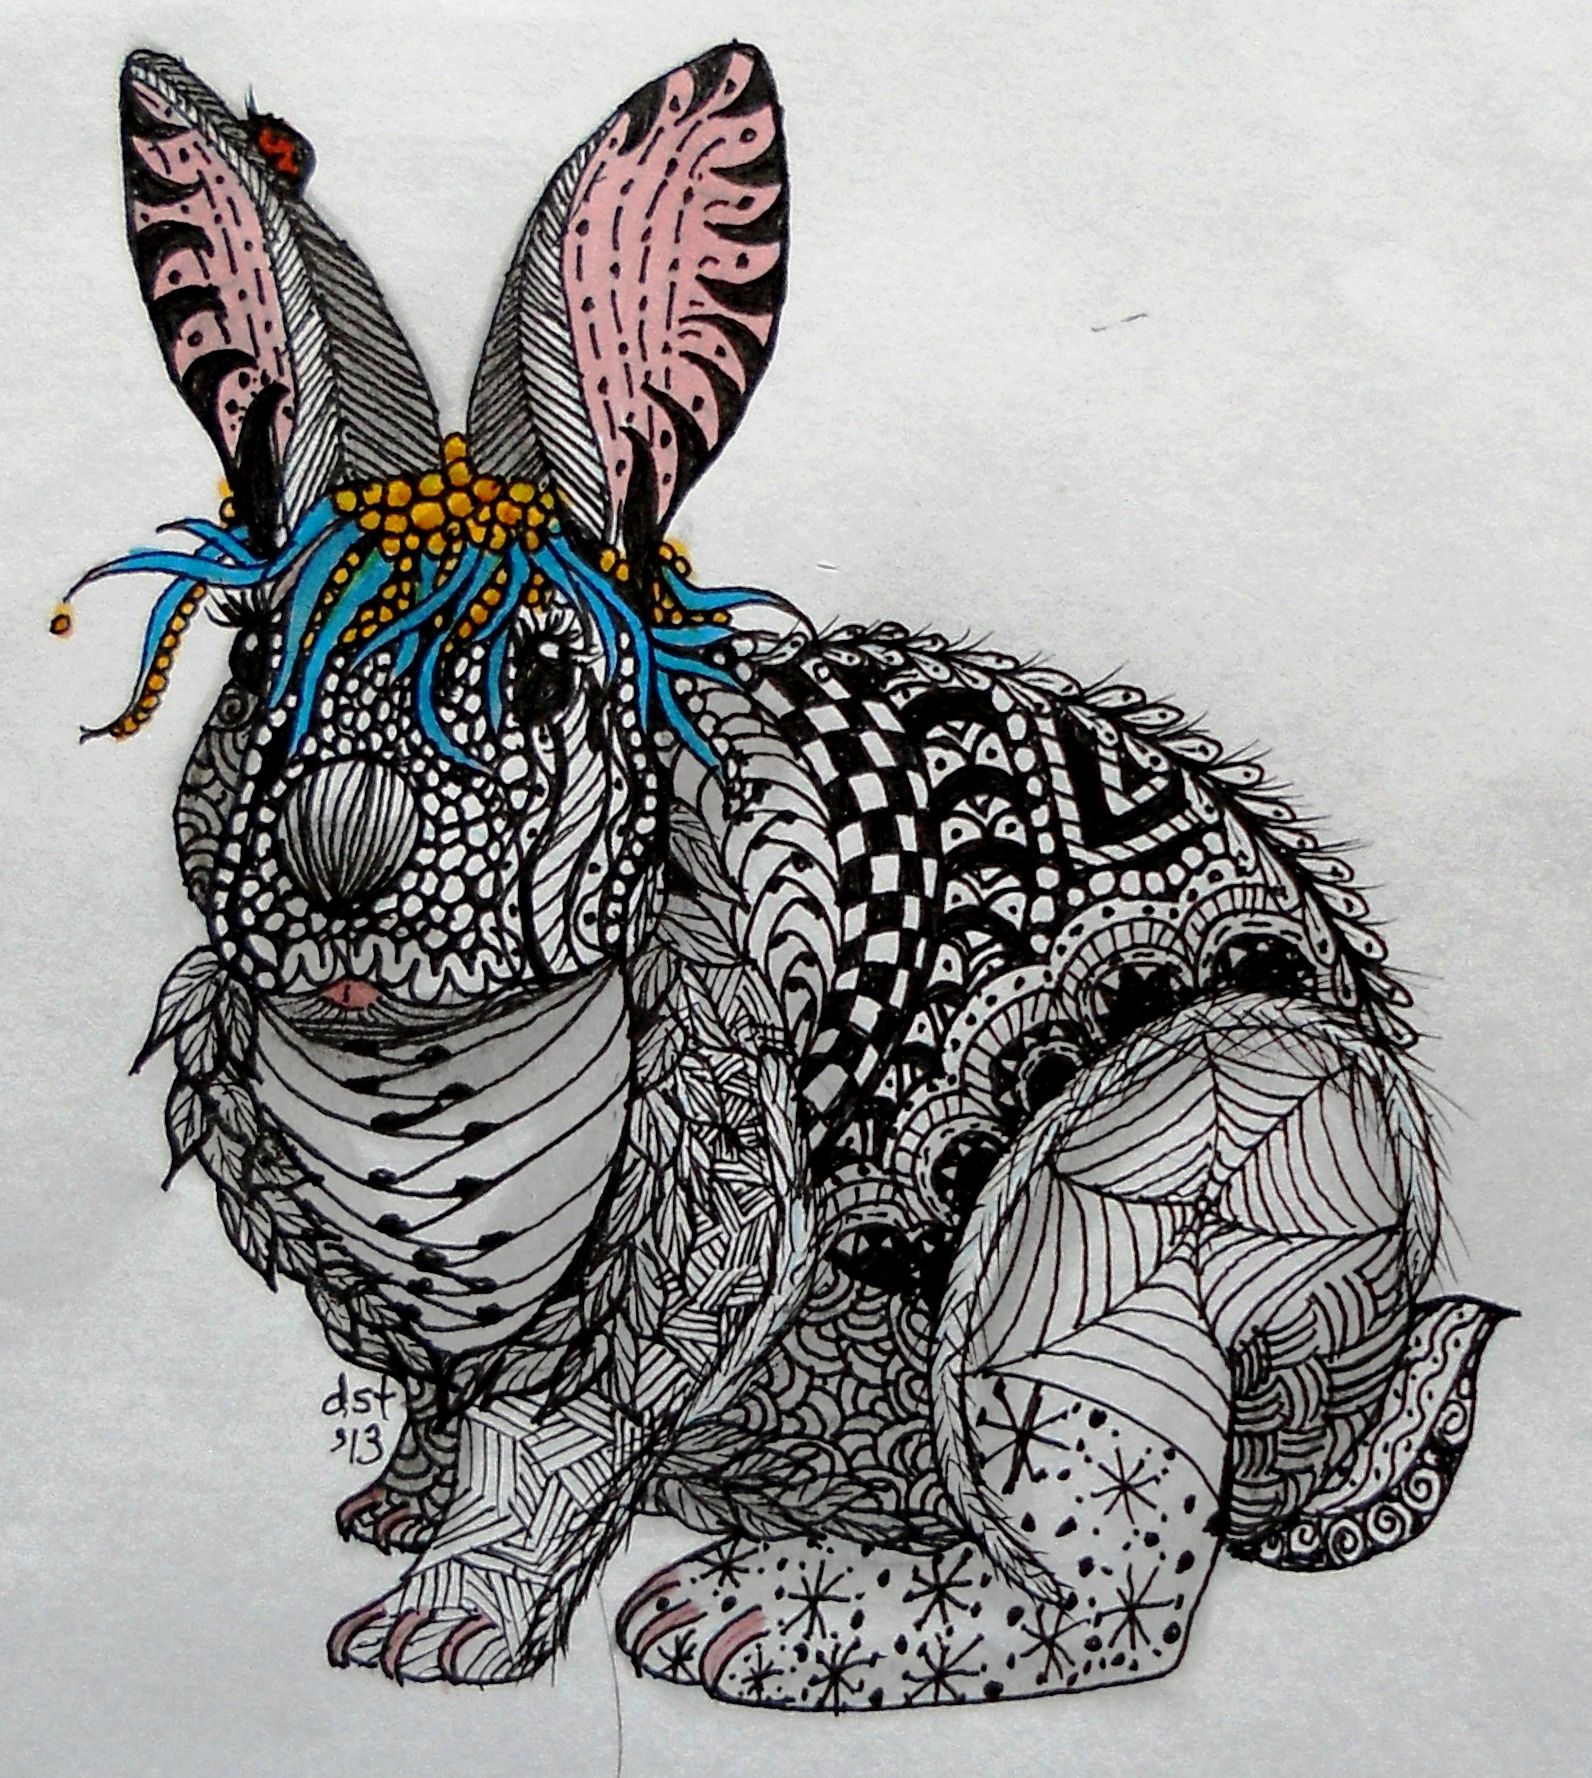 Dusty Zentangle Art Form On The Bunny Check Out The Ear